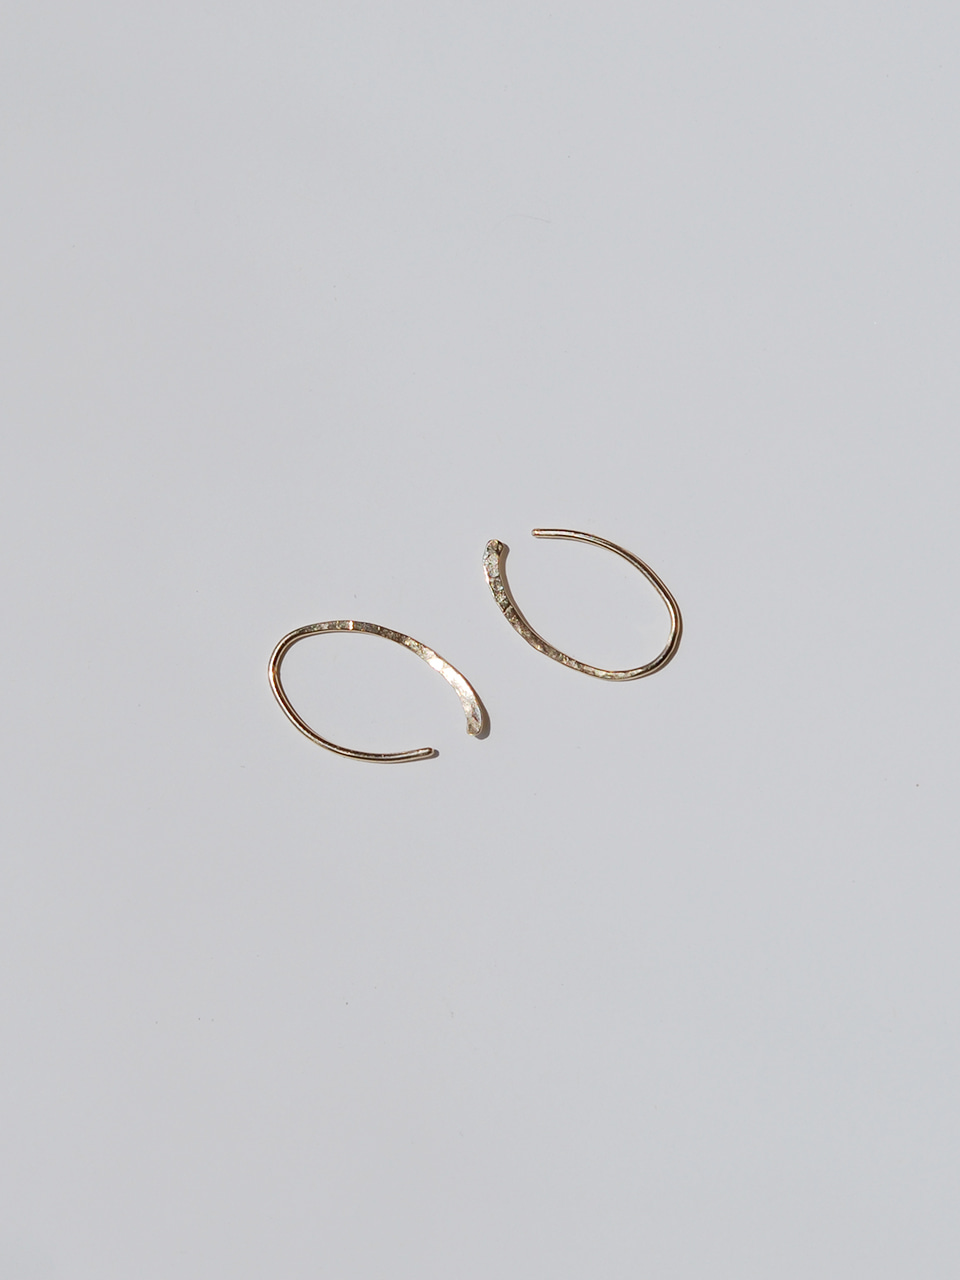 14k gold Hook earrings 후크 14k 귀걸이